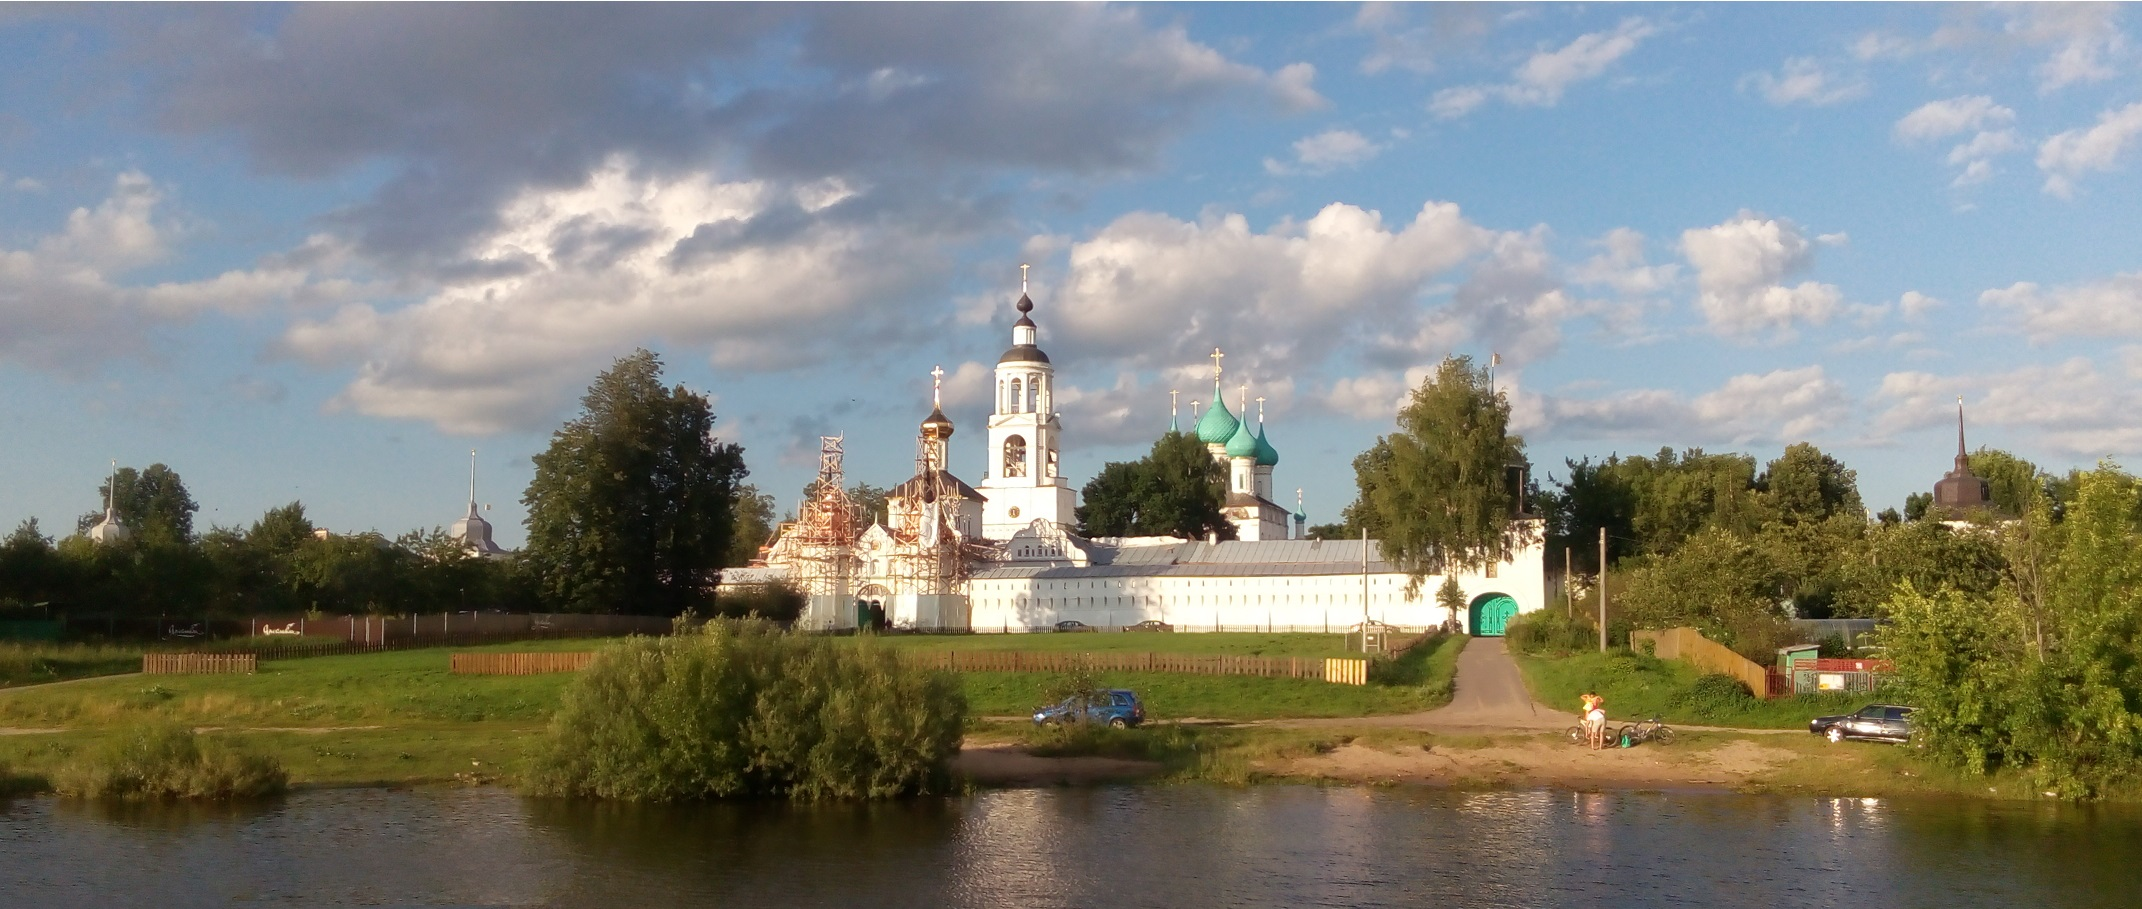 Tolga monastery, a view from Volga river